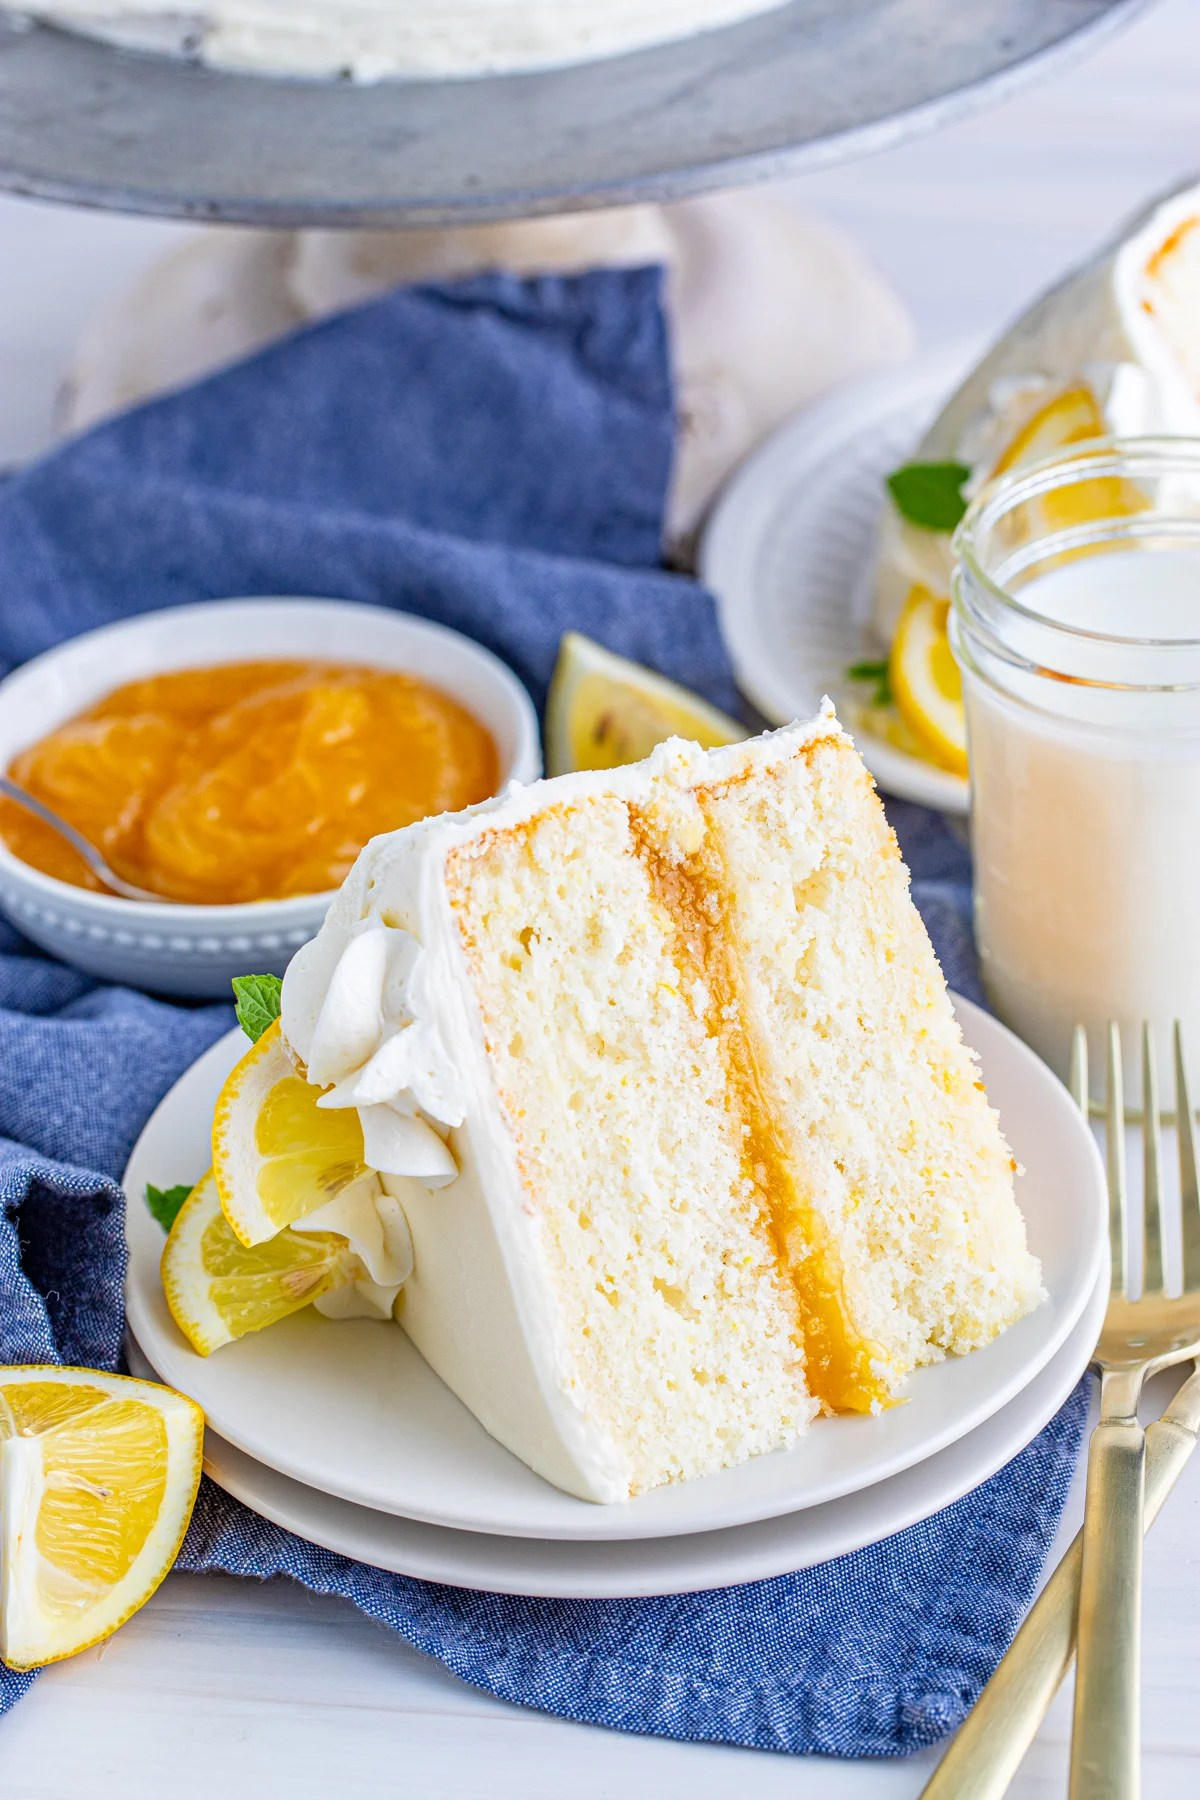 One slice of Lemon Layer Cake on white plate with lemon curd in background